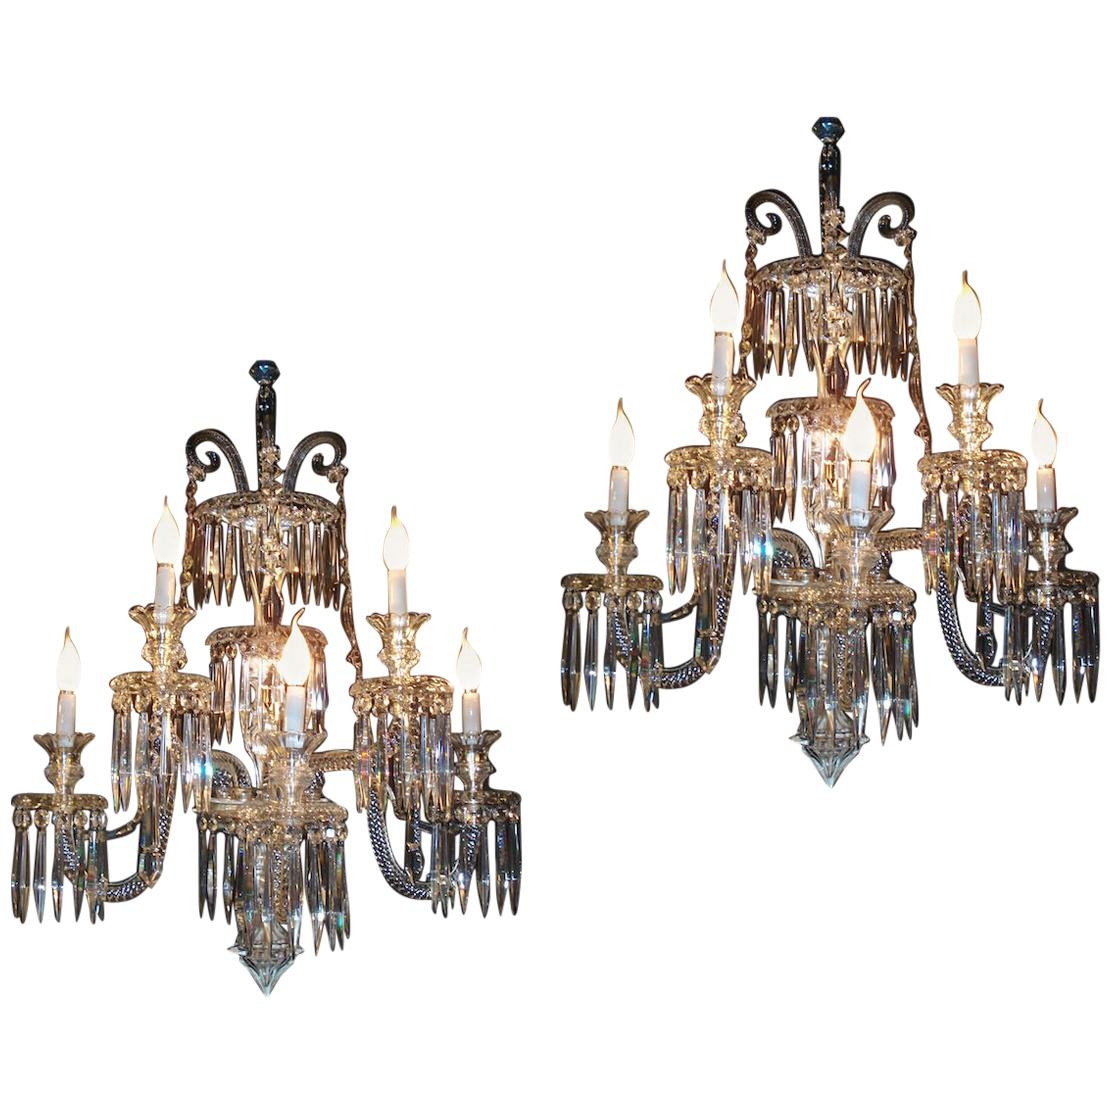 Pair of Superb French Baccarat Crystal Five-Light Sconces